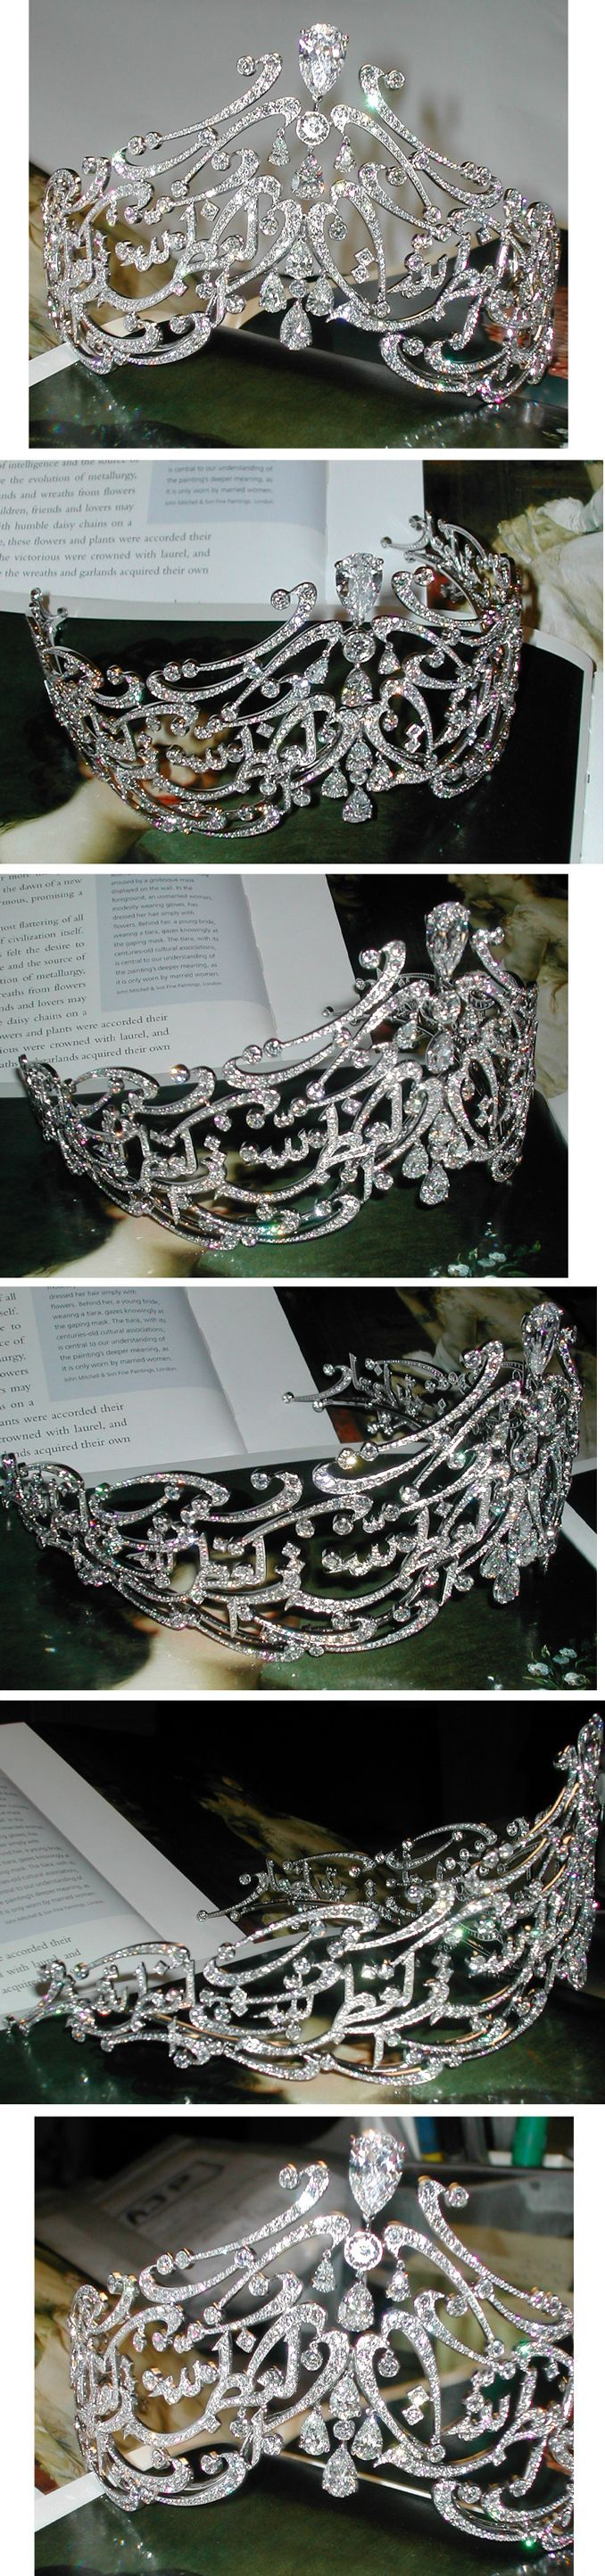 Diamond Tiara - Queen Rania's Arabic Scroll Tiara